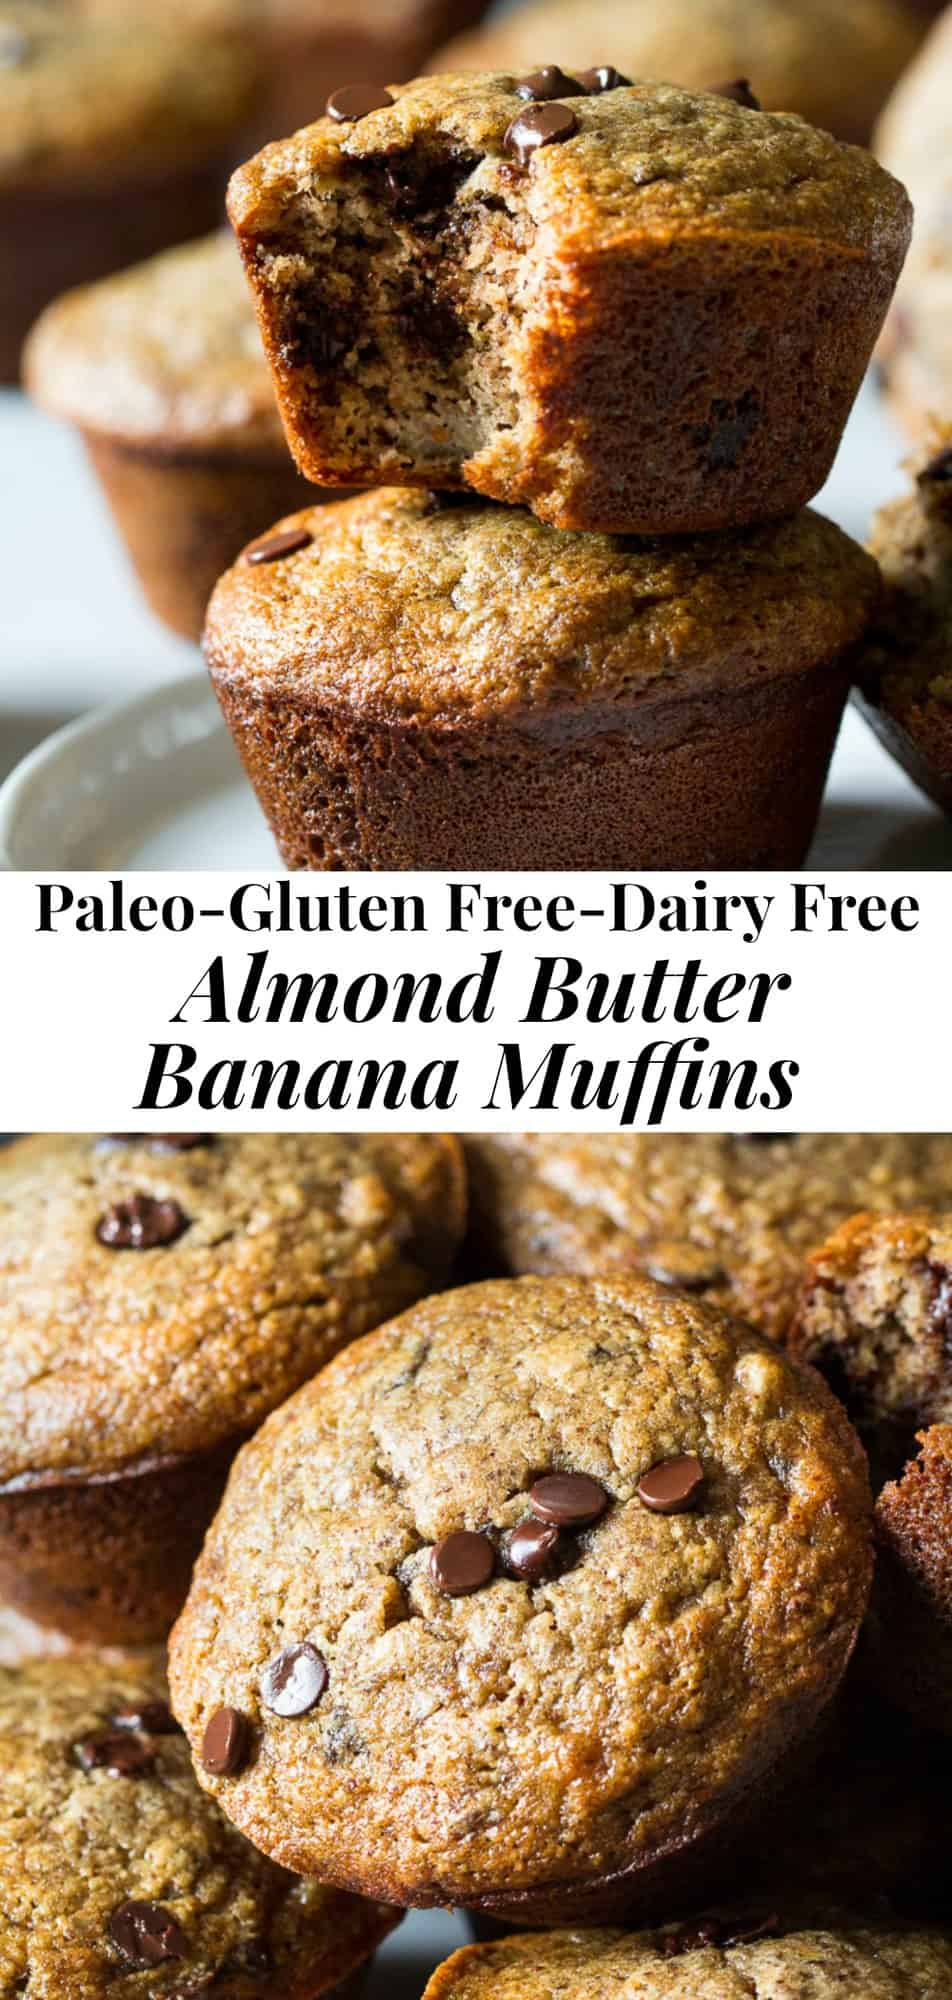 These gluten free and Paleo almond butter banana muffins will become a family favorite for breakfast and snacks! Made with almond flour and flaxseed, these are healthy, kid friendly and perfect for your favorite mix-ins.  #paleo #cleaneating #glutenfree